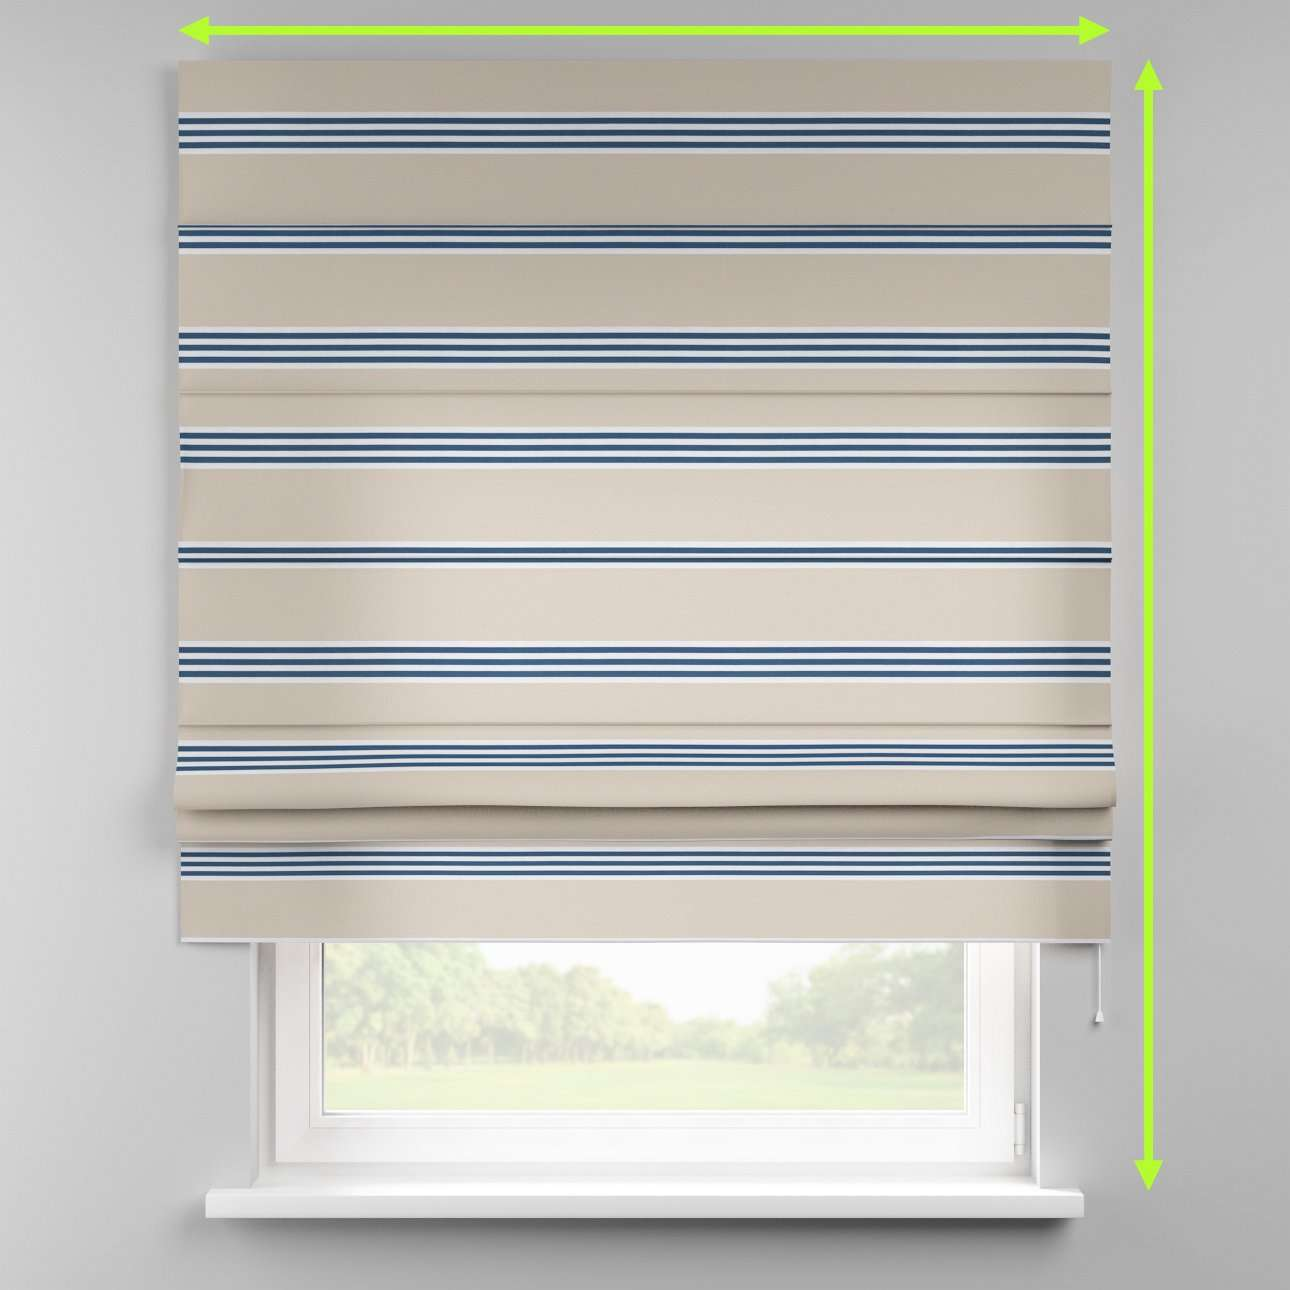 Padva roman blind  in collection Marina, fabric: 140-60